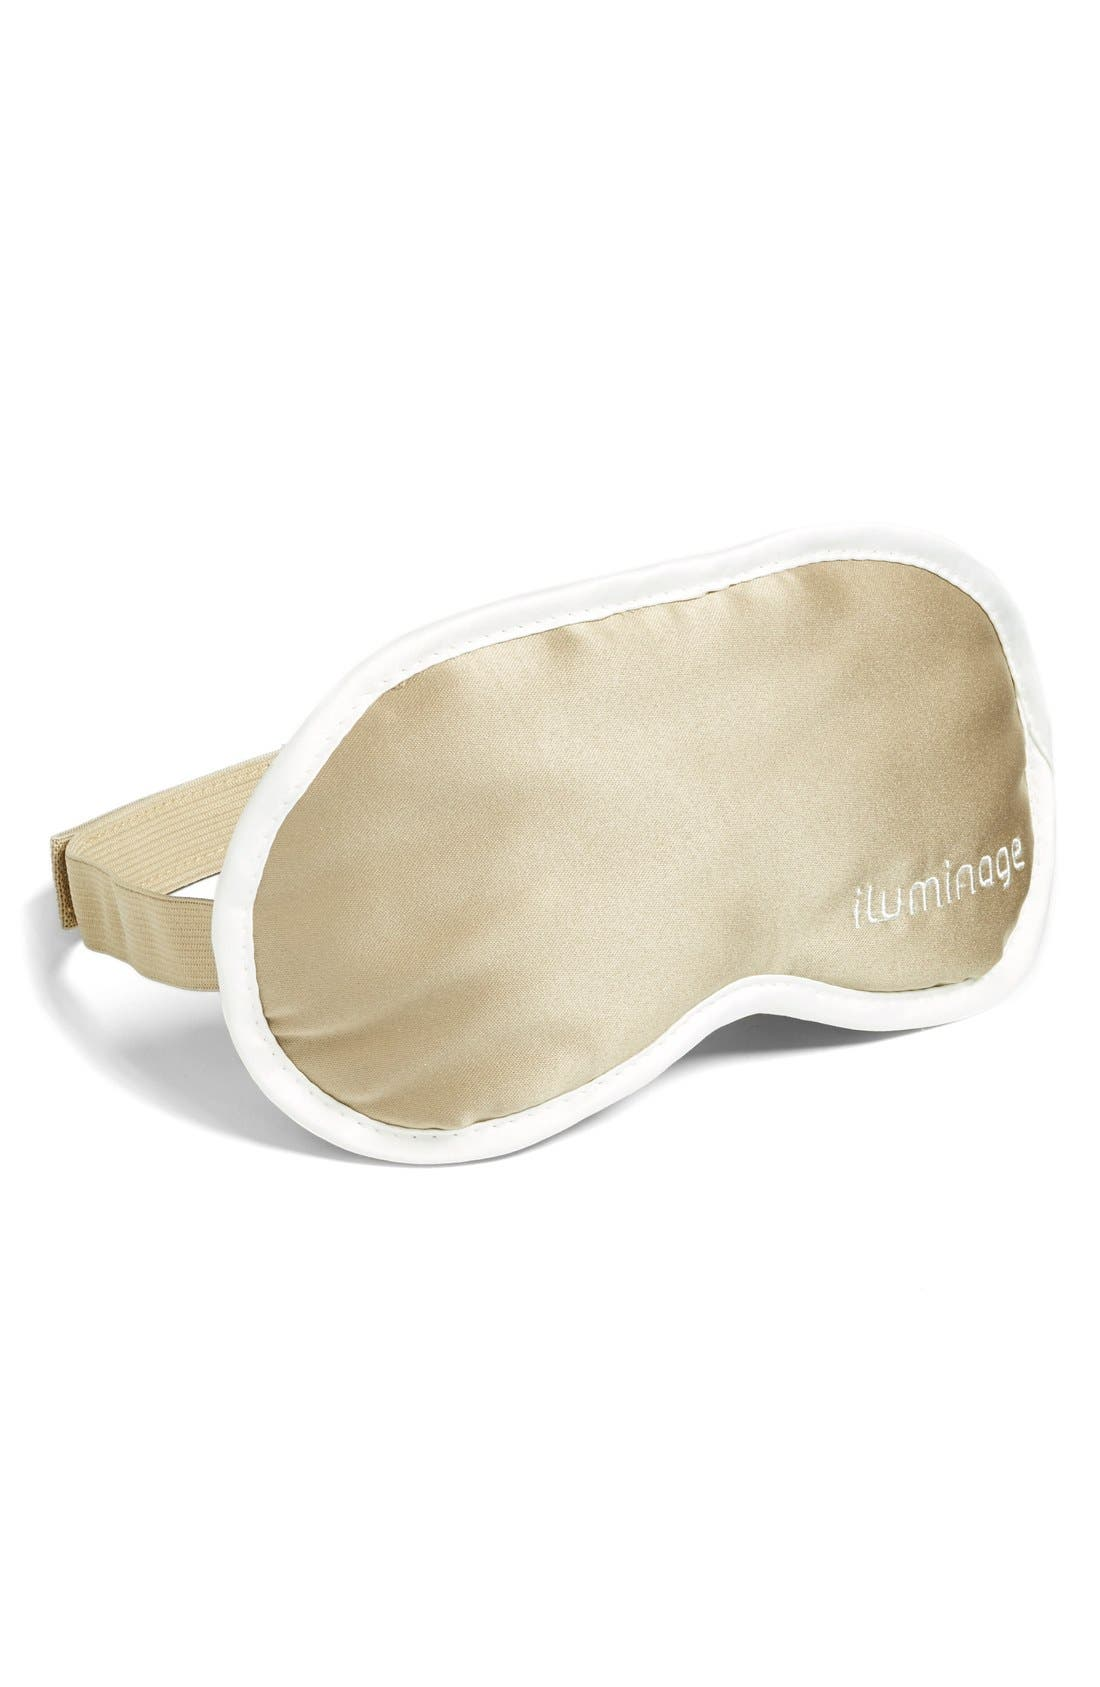 Skin Rejuvenating Eye Mask,                         Main,                         color, 000